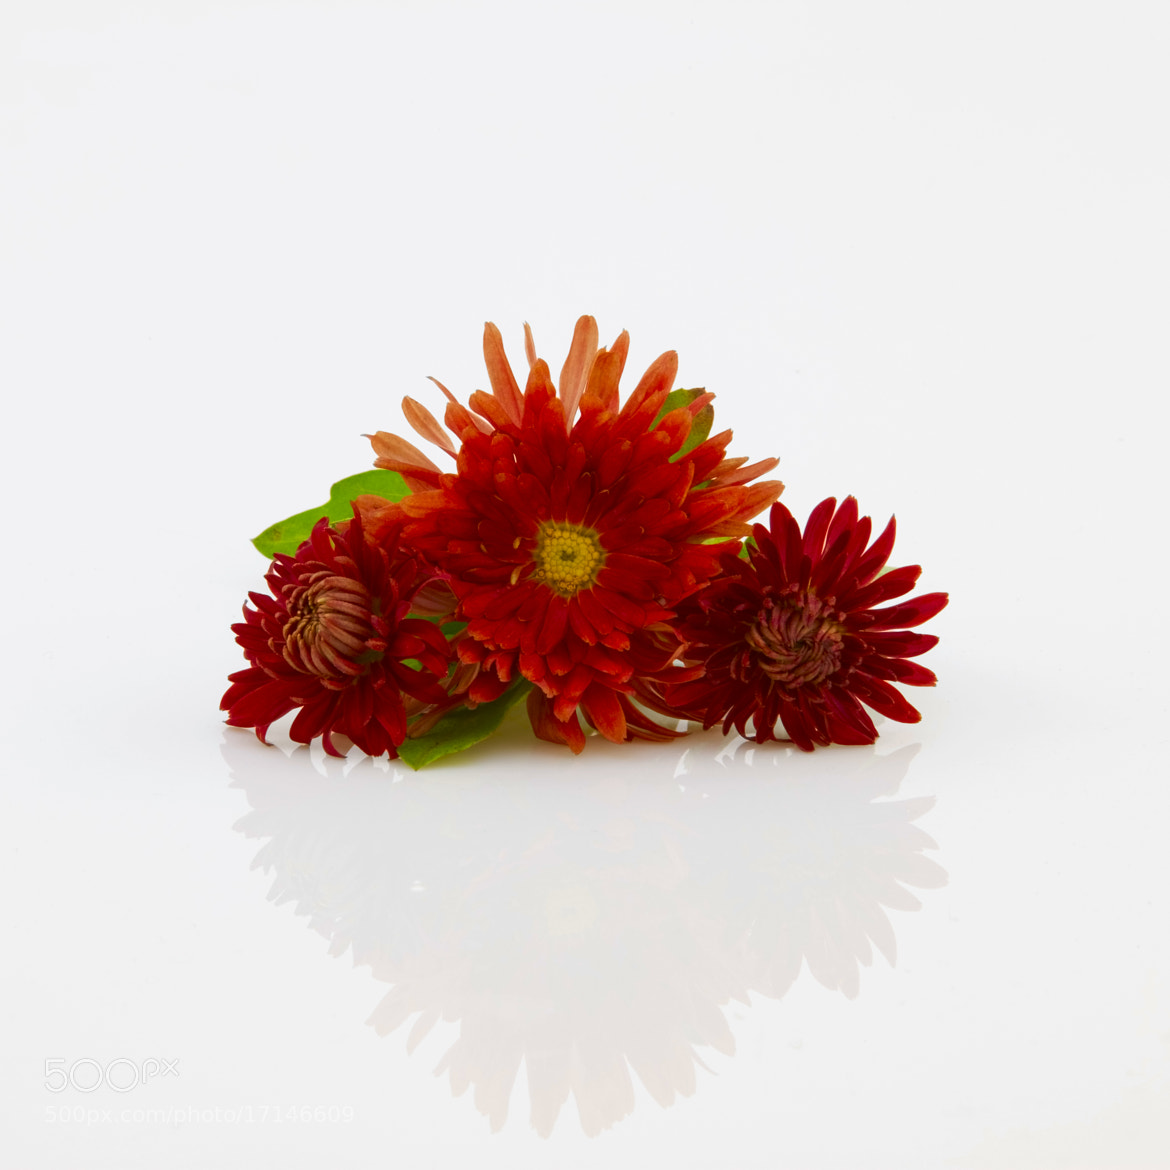 Photograph Composition of red chrysanthemums by Игорь Гончаренко on 500px